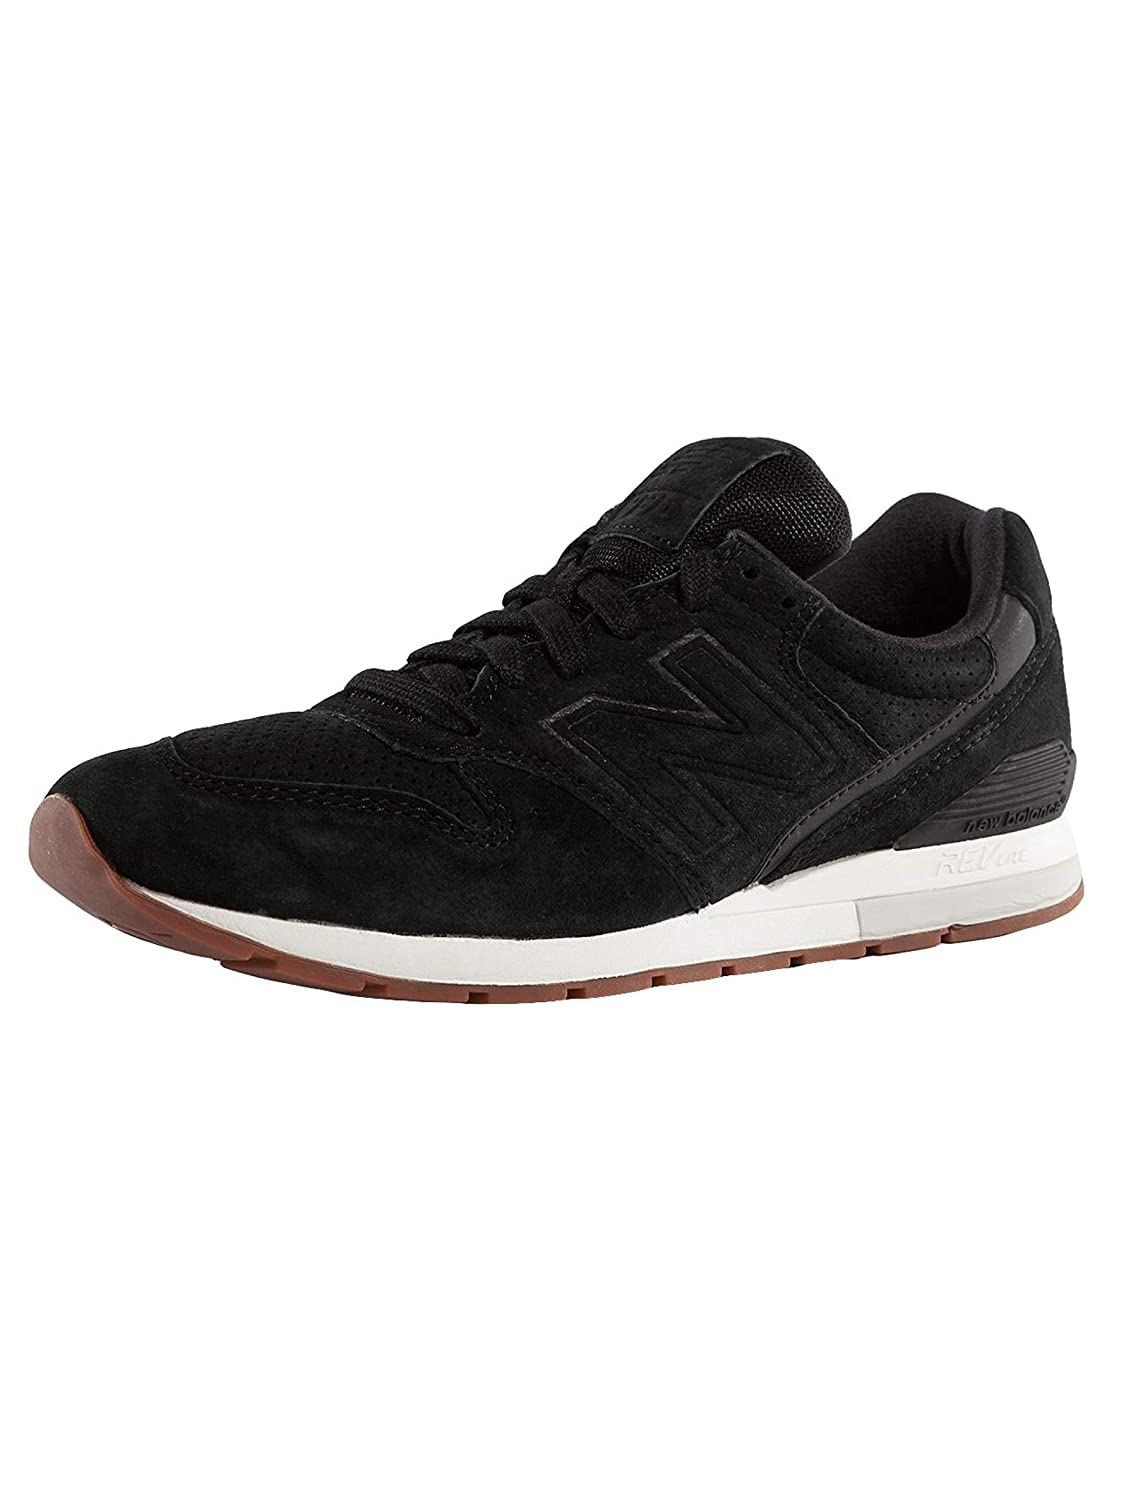 Amazon.com | New Balance Mens Sneaker 996 Revlite in Black Suede 9, 5(US)-9½(US) Black | Fashion Sneakers